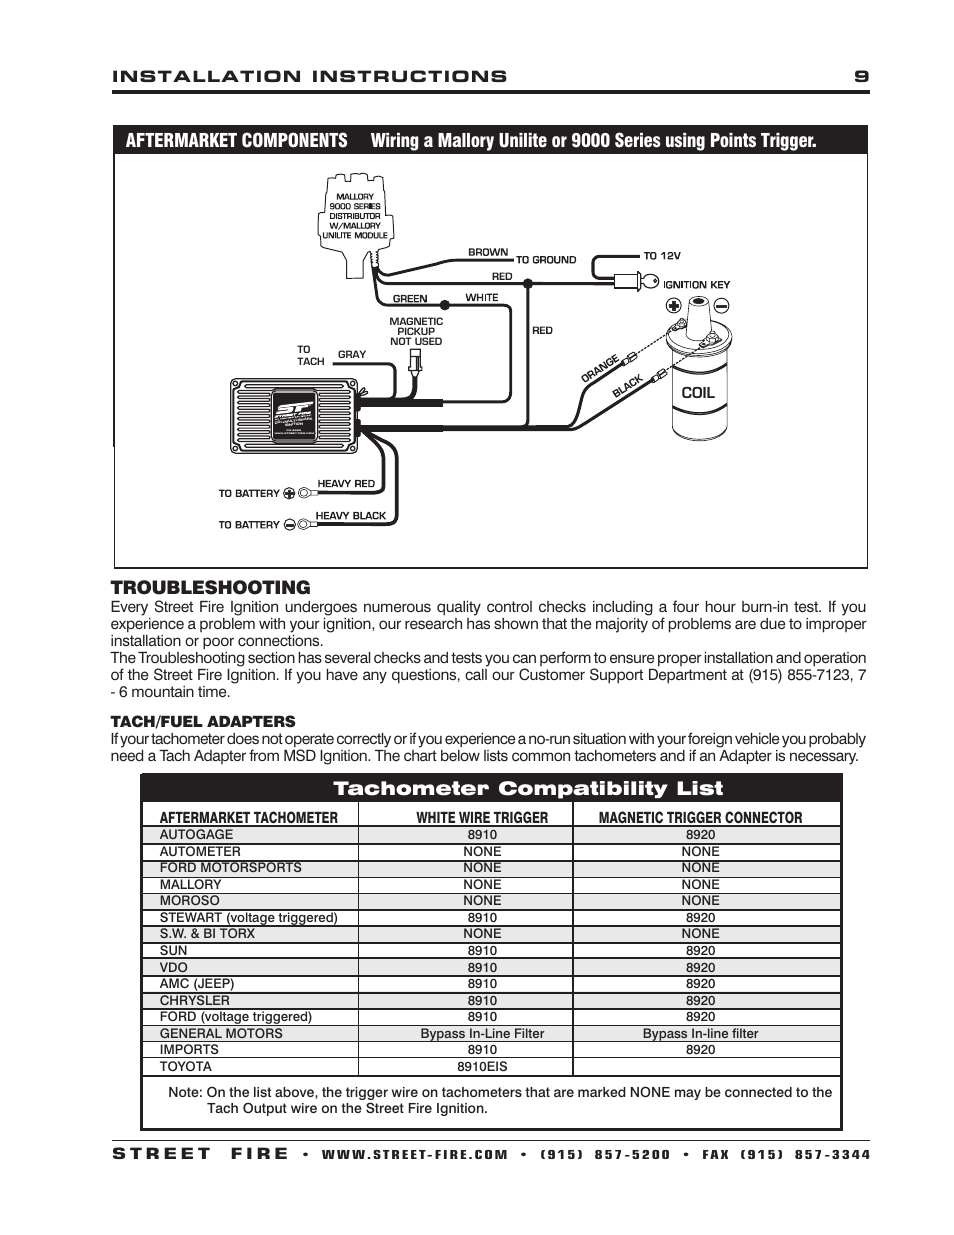 msd 5520 street fire ignition control installation page9 msd tachometer wiring diagram wiring diagram shrutiradio msd 8920 wiring diagram at cos-gaming.co